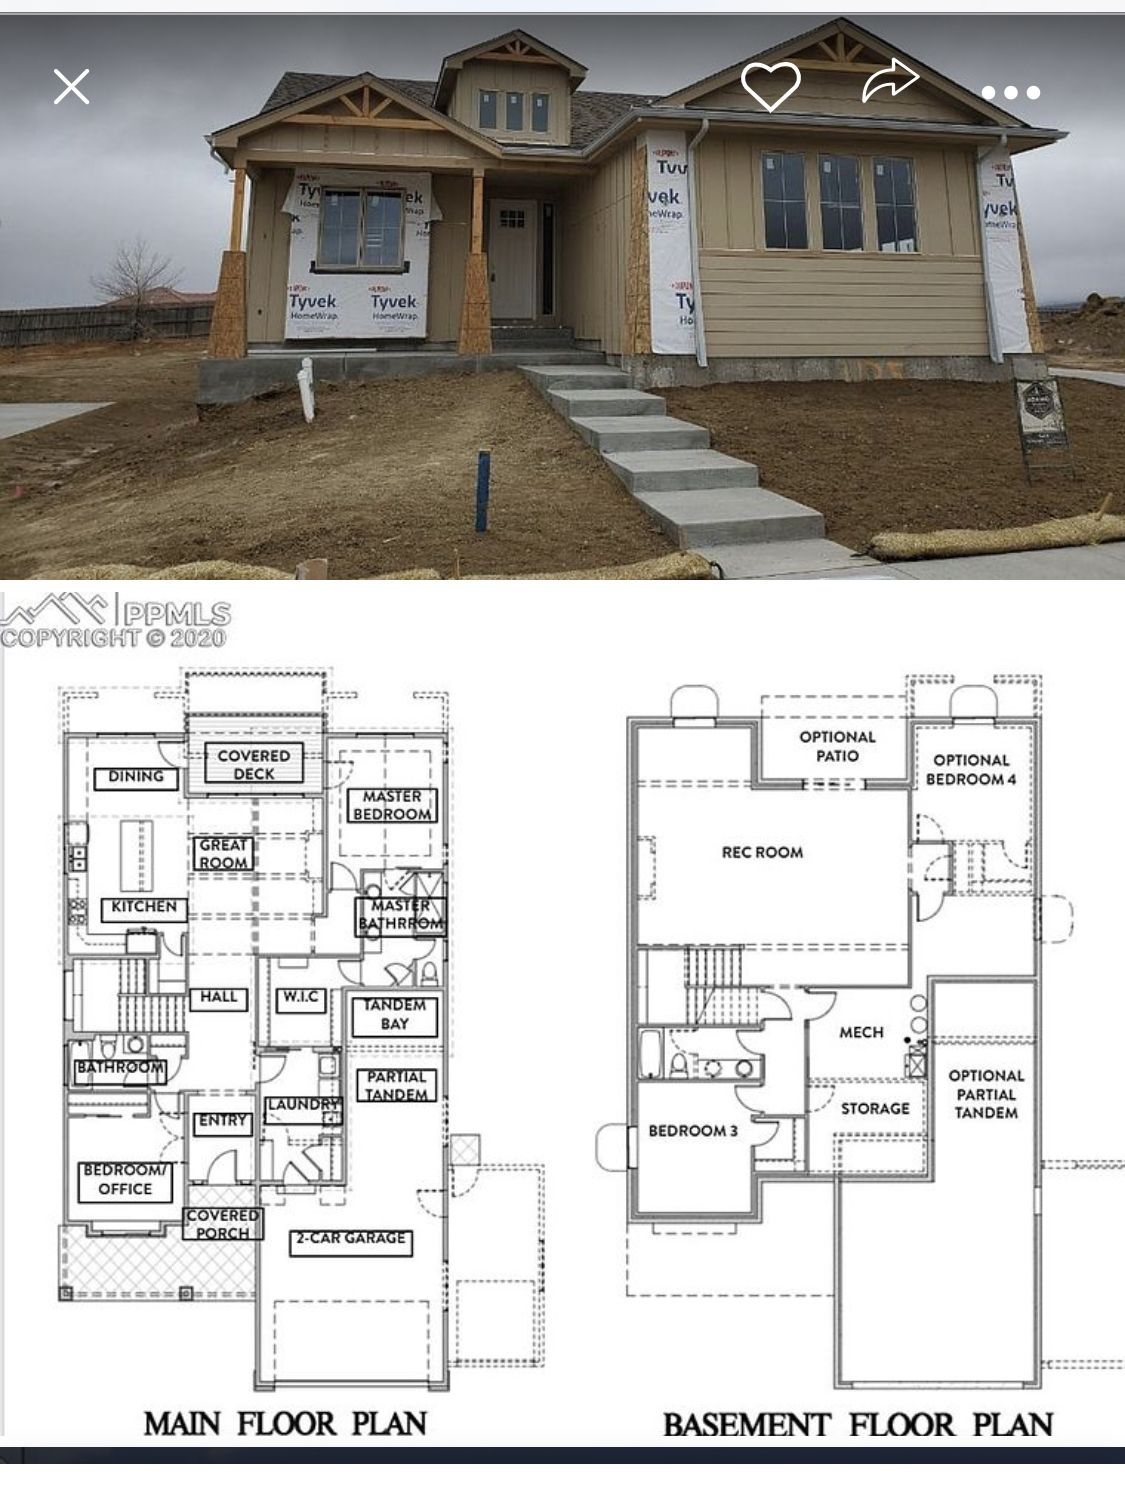 Pin By Richa Grunden On House Plans In 2020 House Plans Floor Plans Diagram